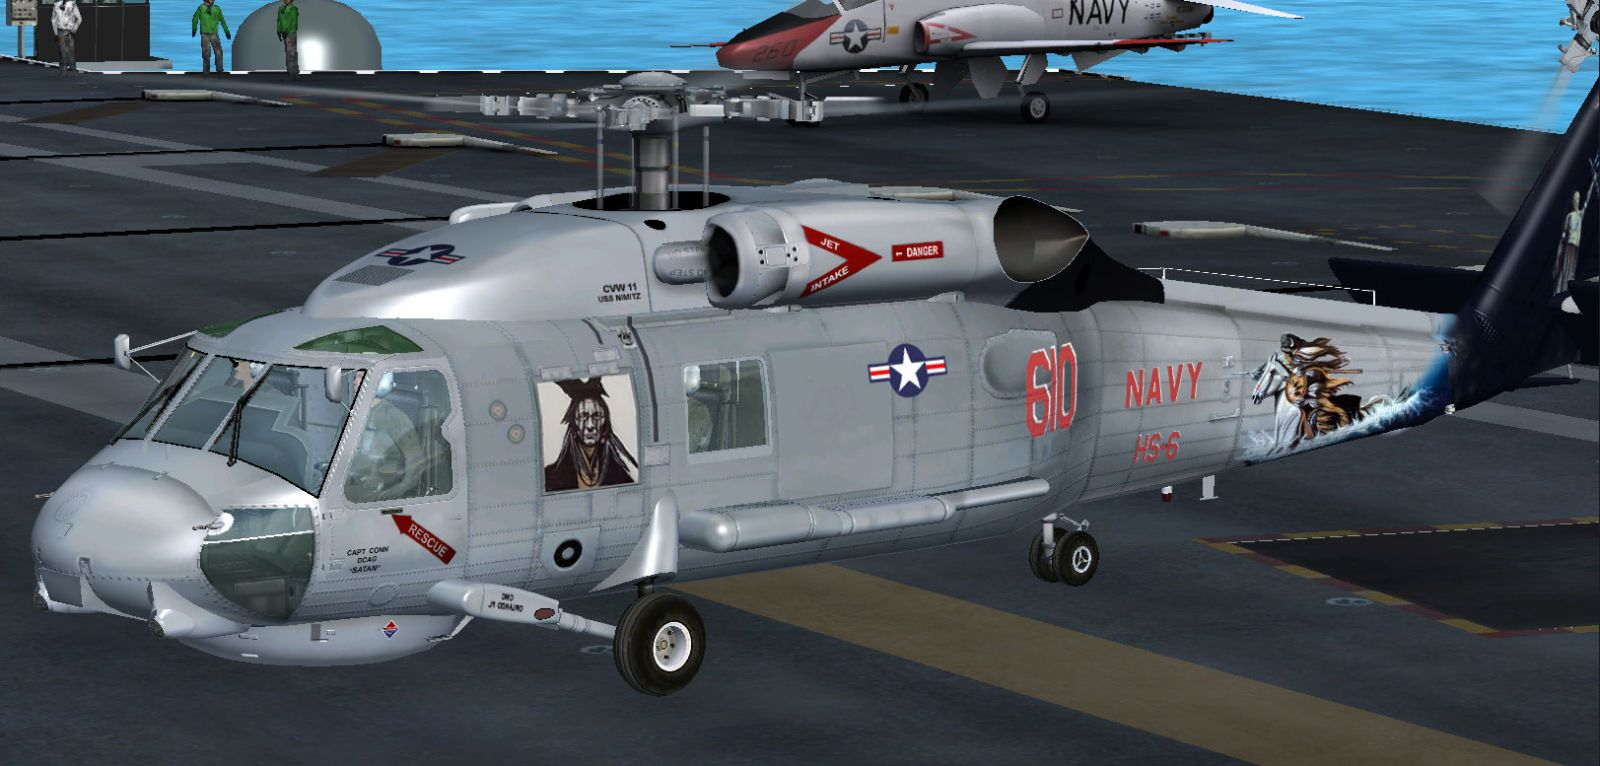 seahawks helicopter with Fsx Flygirls Seahawk Pak on Liam Payne Balcony One Direction Picture n 4599996 likewise File US Navy 070724 N 8907D 451 Five MH 60S Seahawks  from the likewise Huge Bug In Kids Ear Gross Video furthermore Octopus Yacht Paul Allen Used To Find A Wwii Battleship 2015 3 together with Did Patriots Intentionally Deflate Footballs Colts Ch ionship Game NFL Launches Probe Taking Ball Away Testing New England S 45 7 Victory.